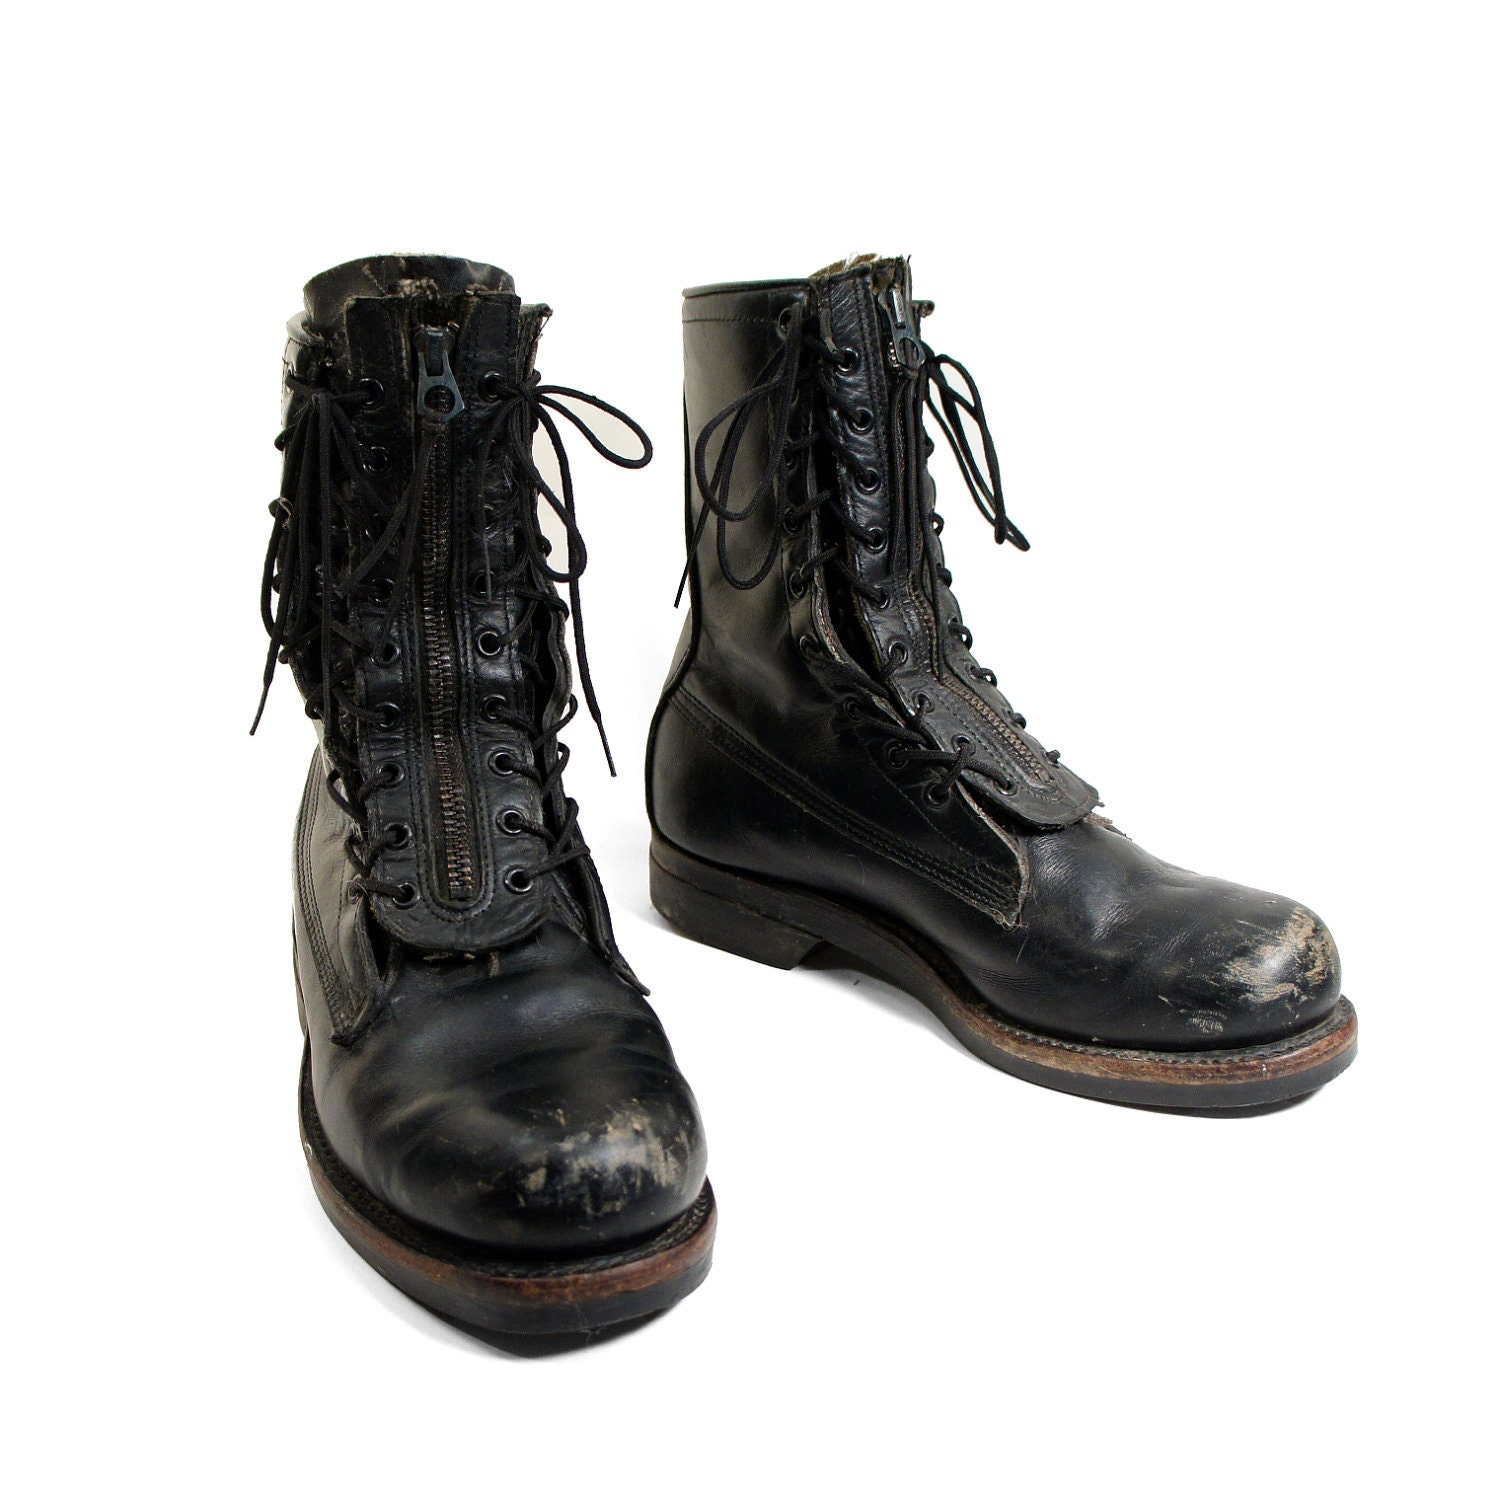 Perfect Leather Combat Boots That Come In Both Brown And Black 3 Corley Combat Boots, $7697 At Stevemaddencom  Brown Lace Ups That Have A Broken In Look Perfect For Spring 2010s Tailored Grunge Look 4 Volatile Women Black Hole